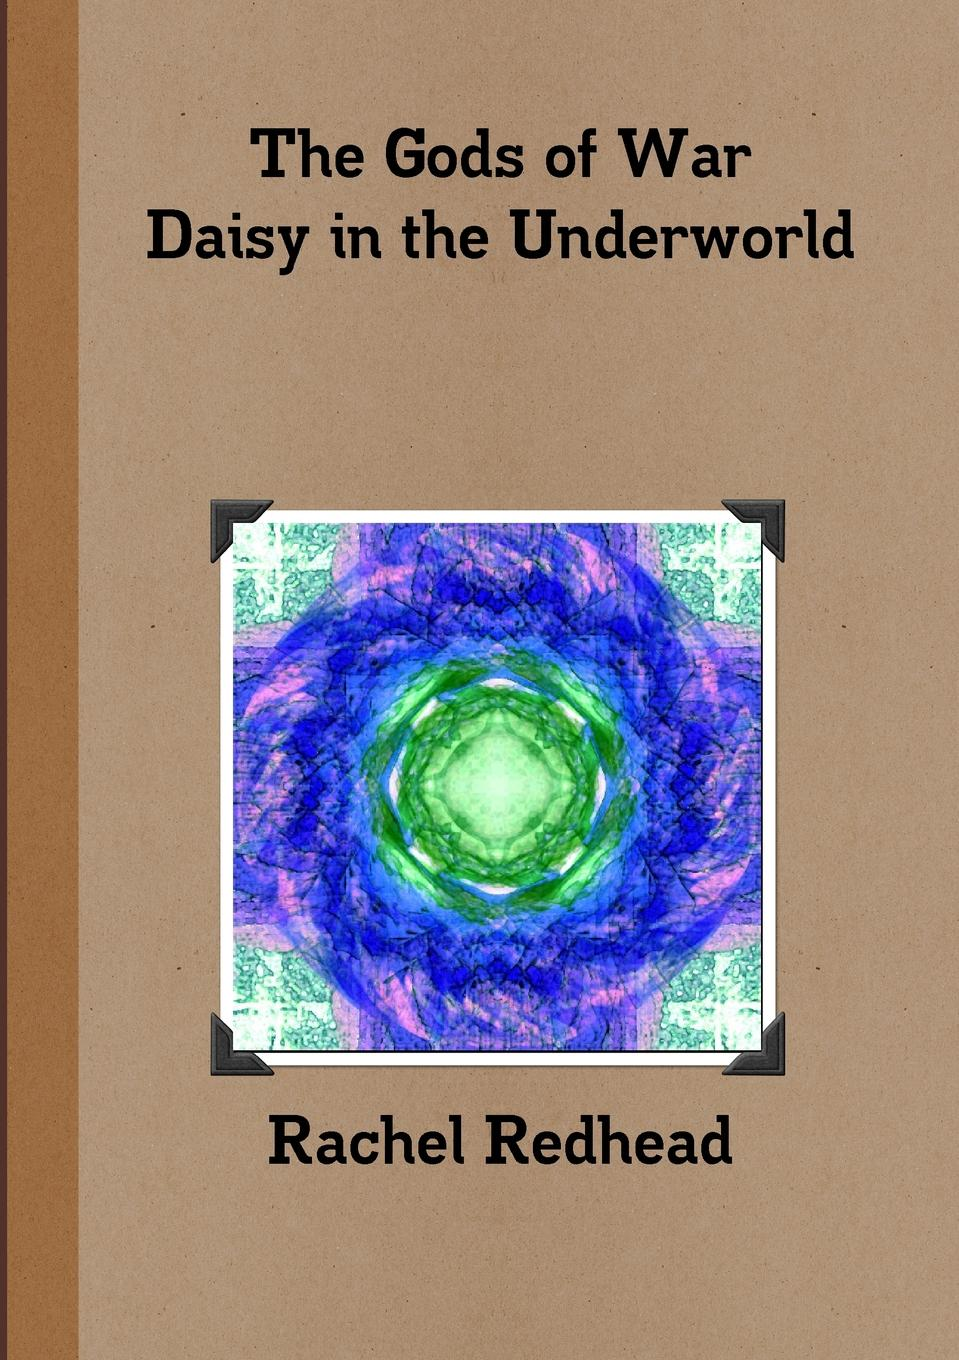 Rachel Redhead The Gods of War - Daisy in the Underworld steven davidoff m gods at war shotgun takeovers government by deal and the private equity implosion